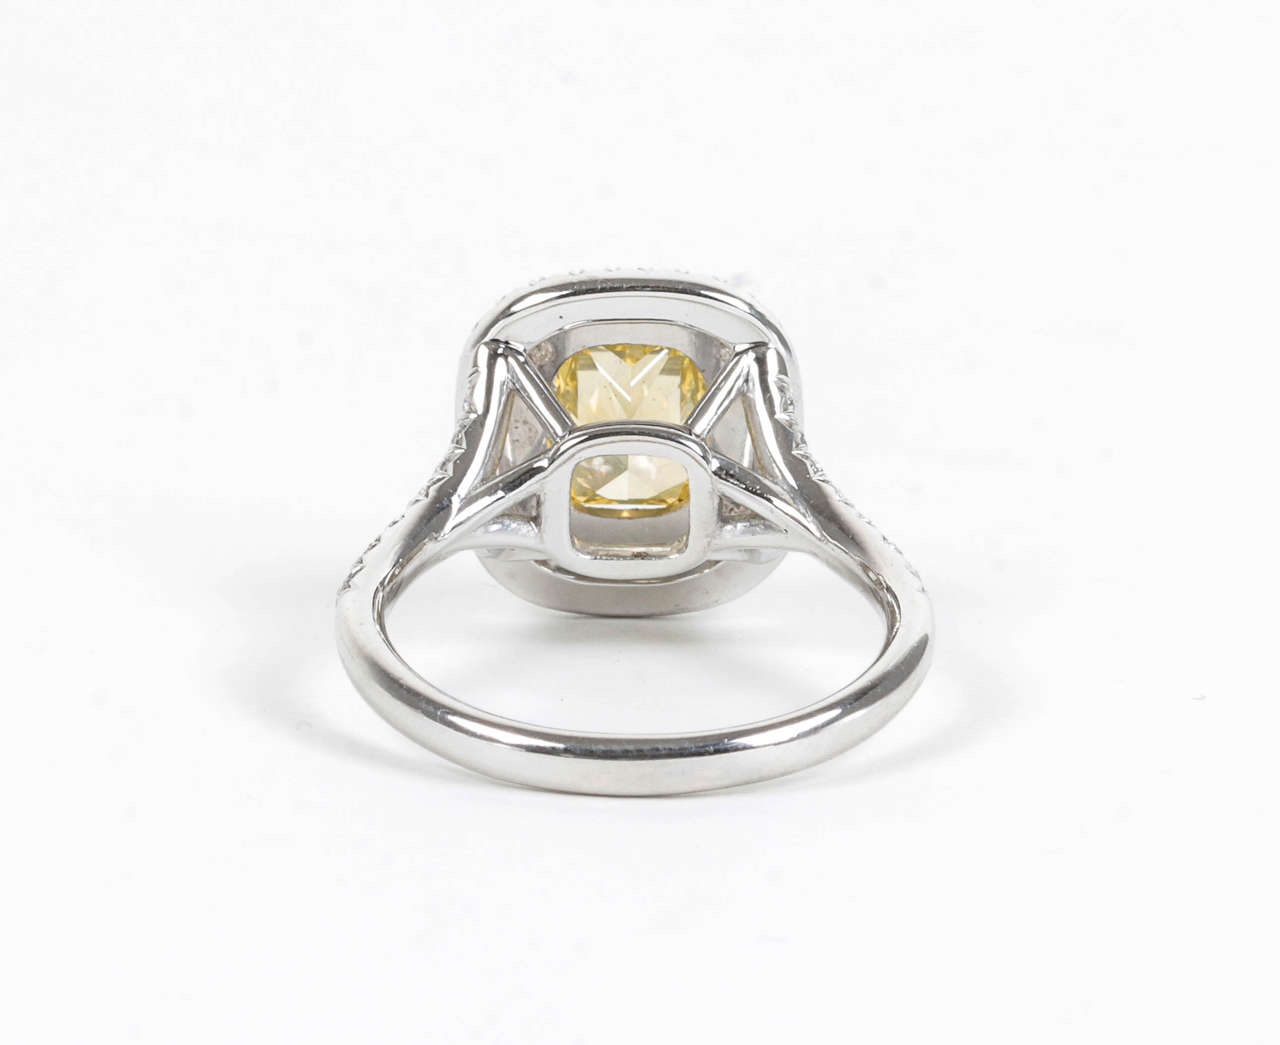 Rare Cushion Cut GIA Certified Vivid Yellow and White Diamond Platinum Ring For Sale 1